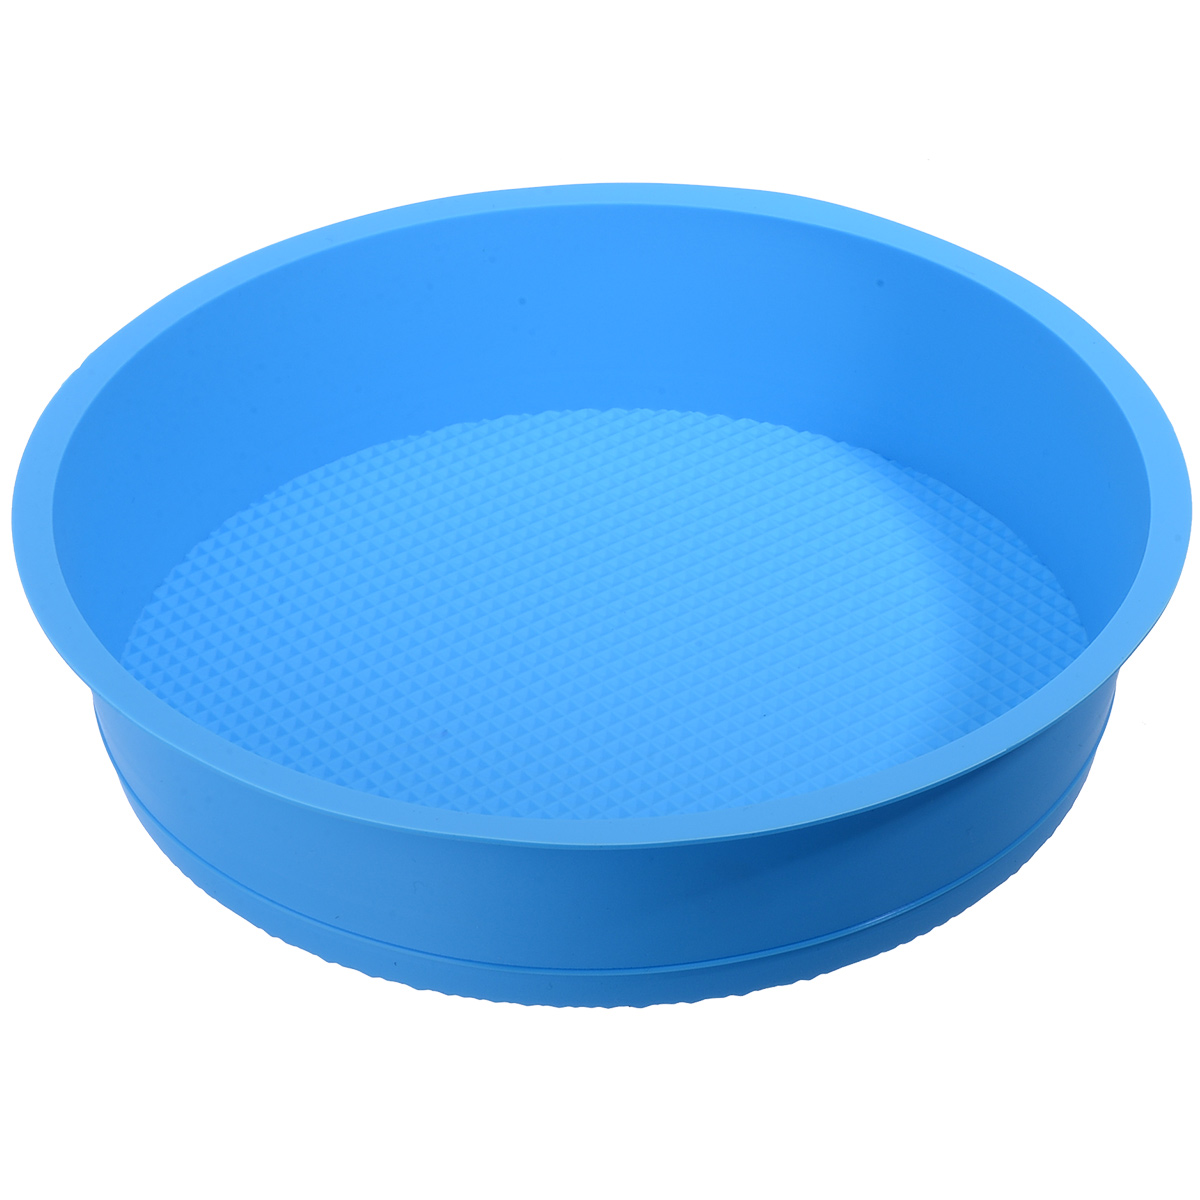 26cm <font><b>Round</b></font> Birthday Cake <font><b>Mold</b></font> Silicone <font><b>Cheese</b></font> Cake Base <font><b>Mold</b></font> Tool Pastry DIY Baking Maker Tray <font><b>Mold</b></font> Random Color Kitchen Tool image